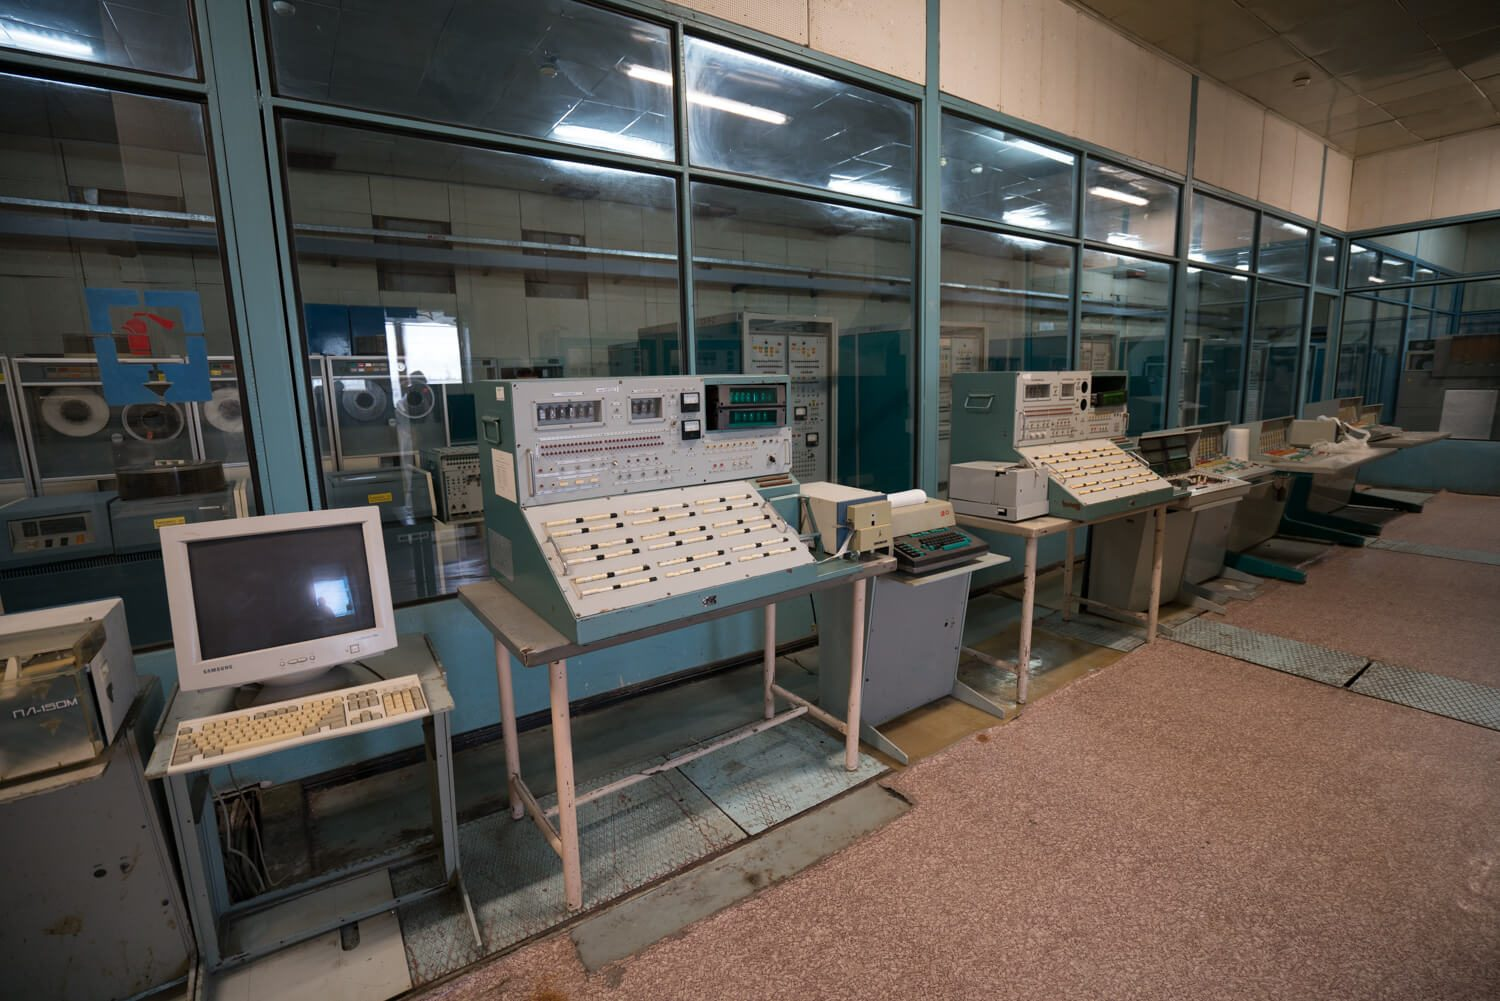 The Computer Room in Chernobyl.